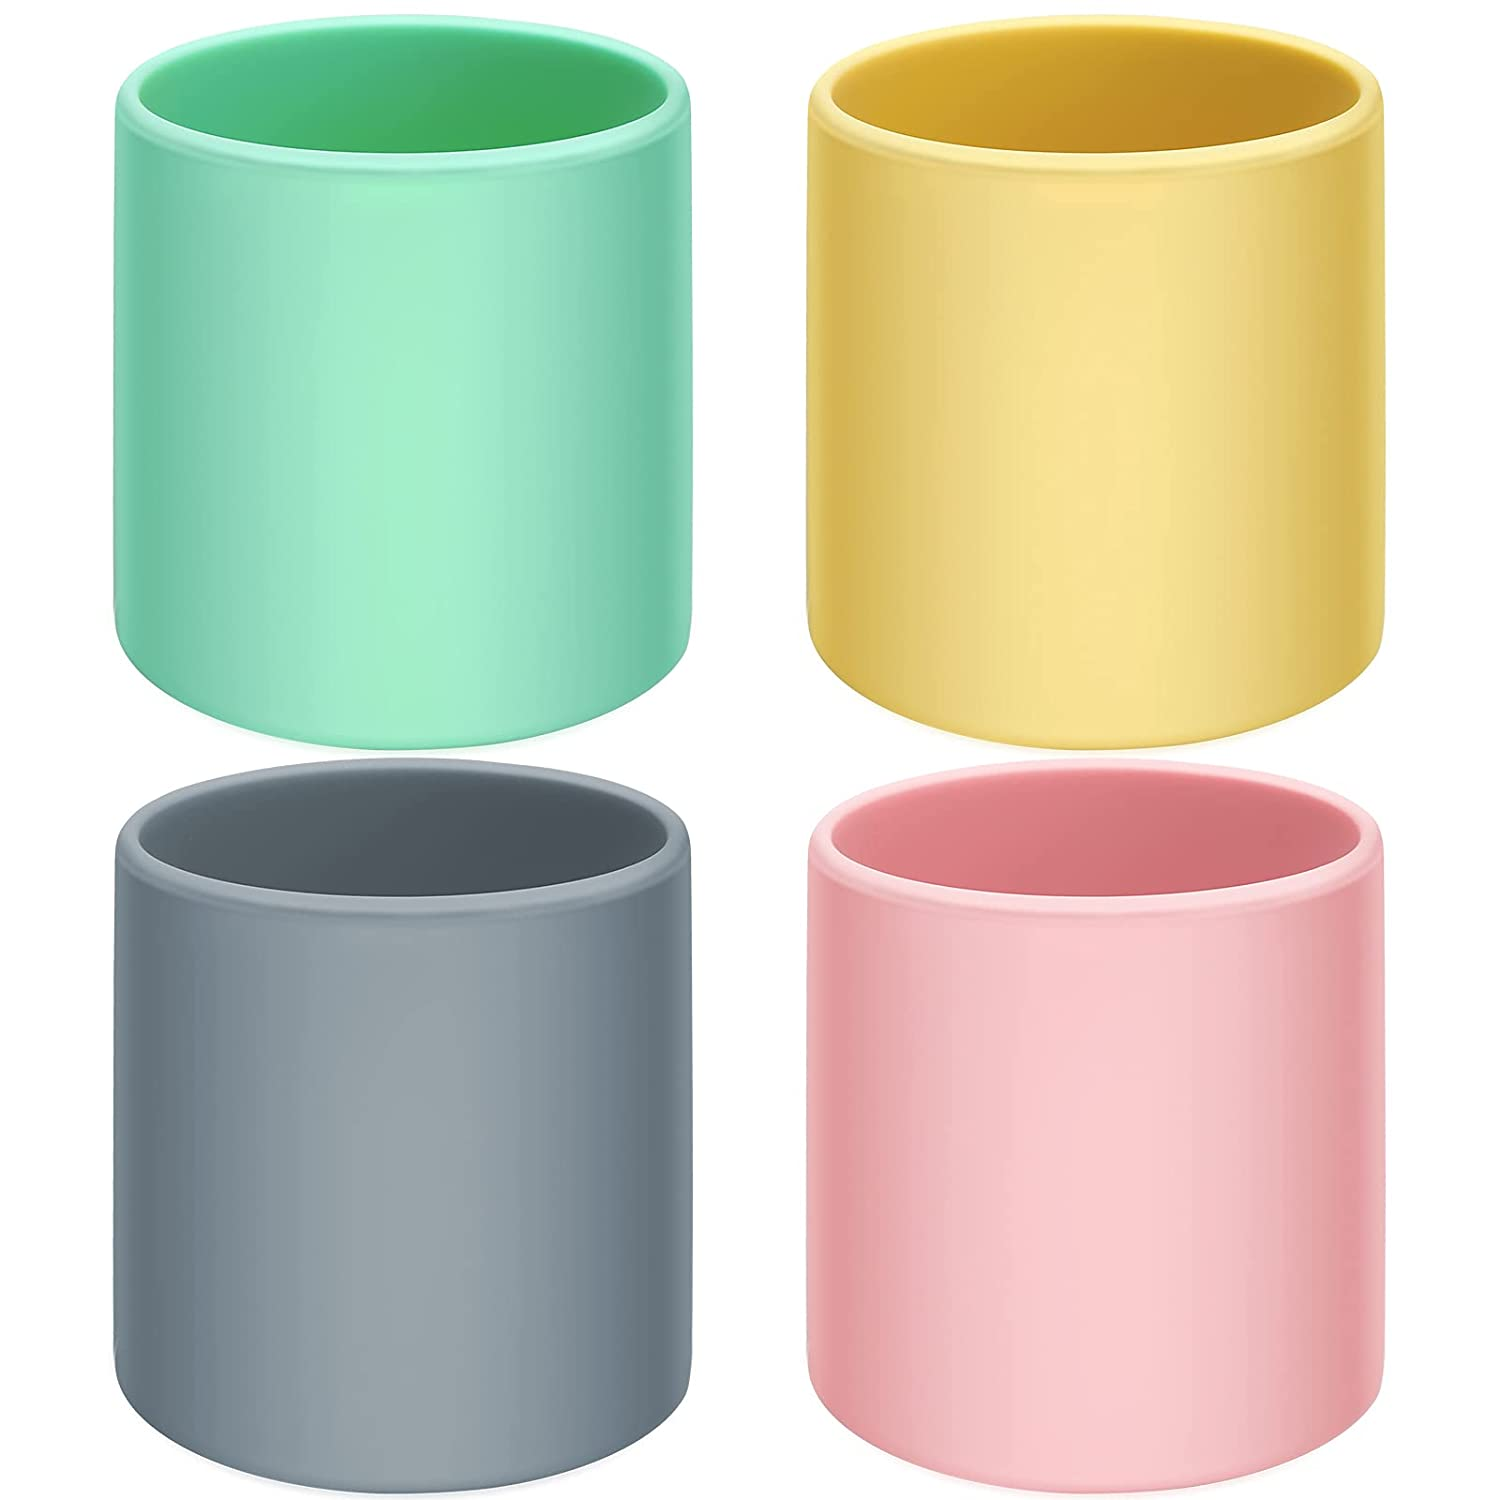 4 Pieces Infant Silicone Training Cup Reliable Baby Open Cup Toddler Learning Cup Durable Baby Drinking Cup for Baby Over 6 Months